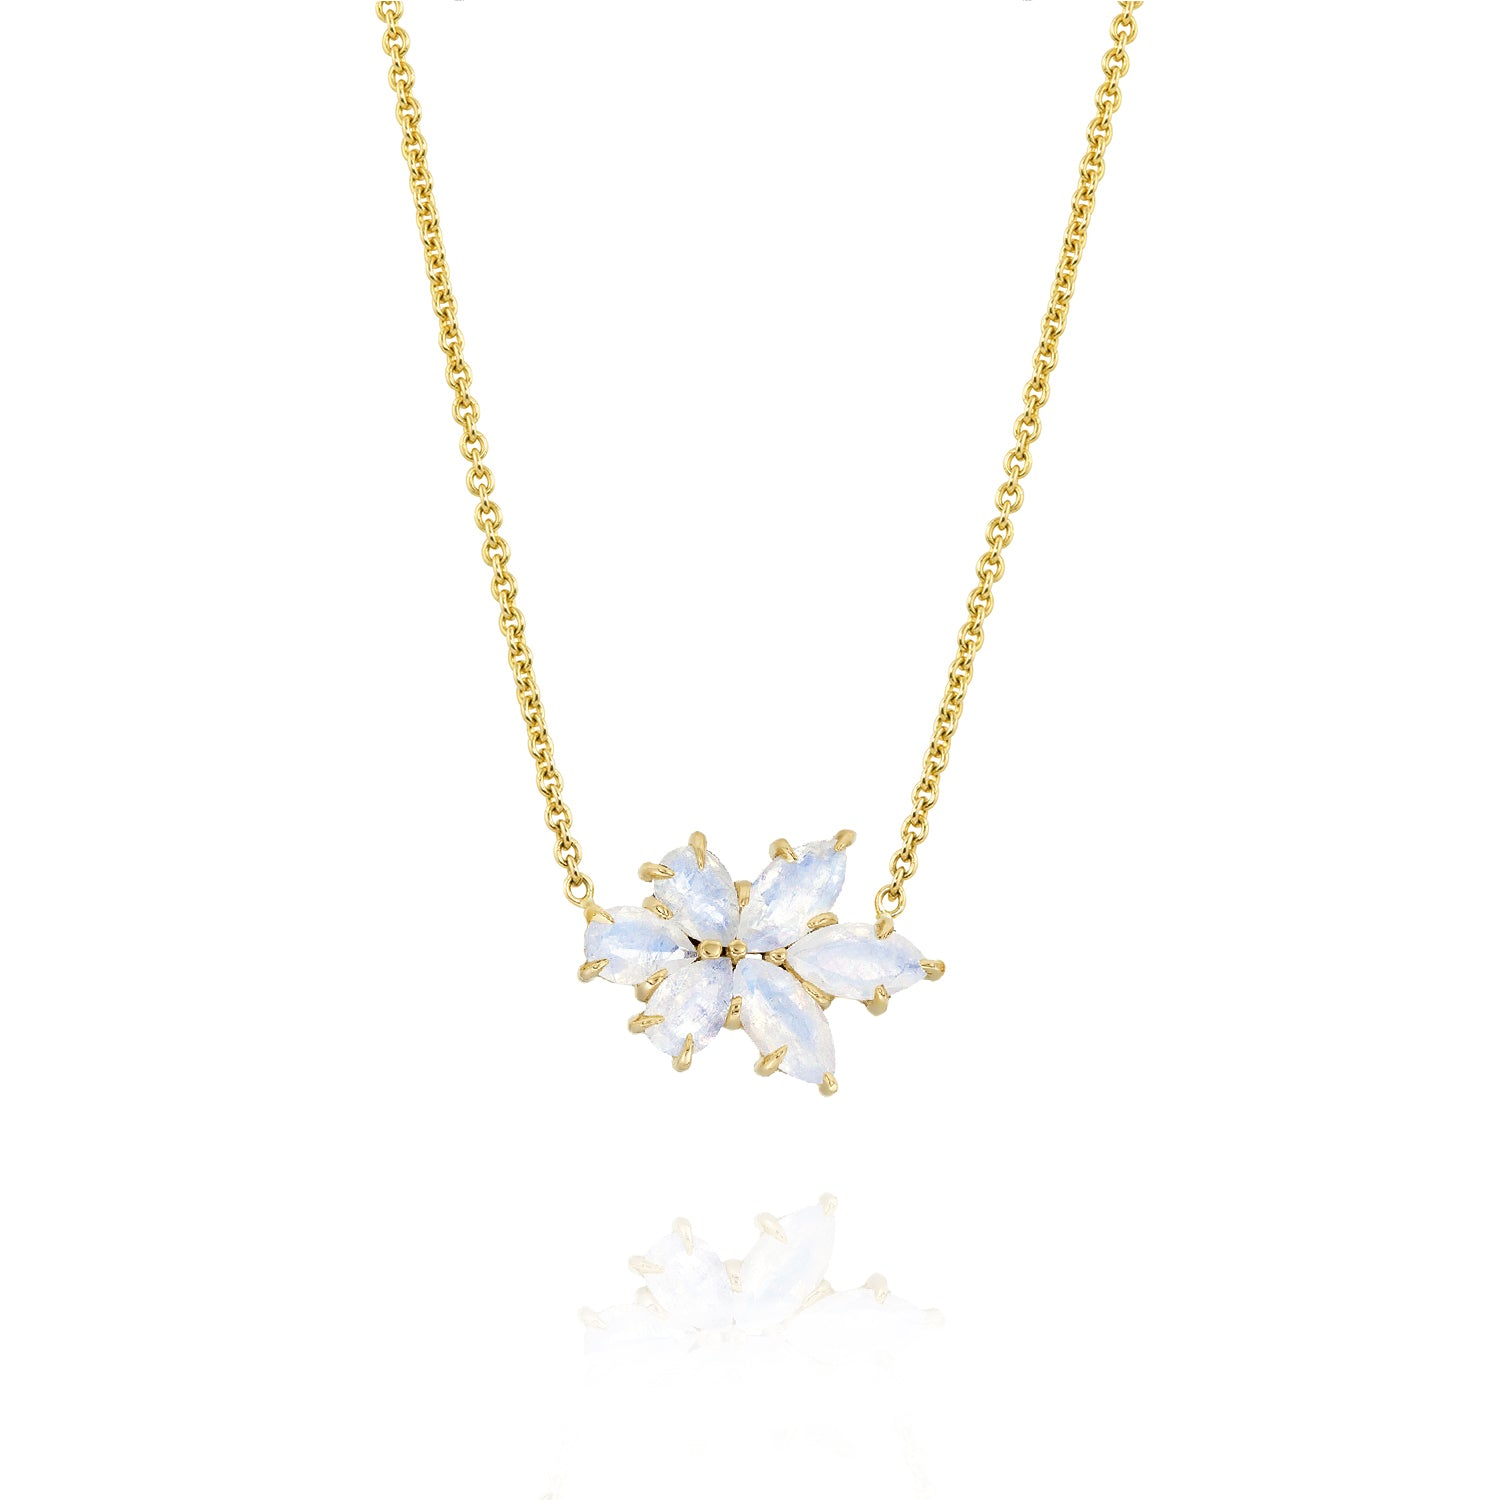 Gold Medium Bouquet Necklace, Jewelry - Katherine & Josephine